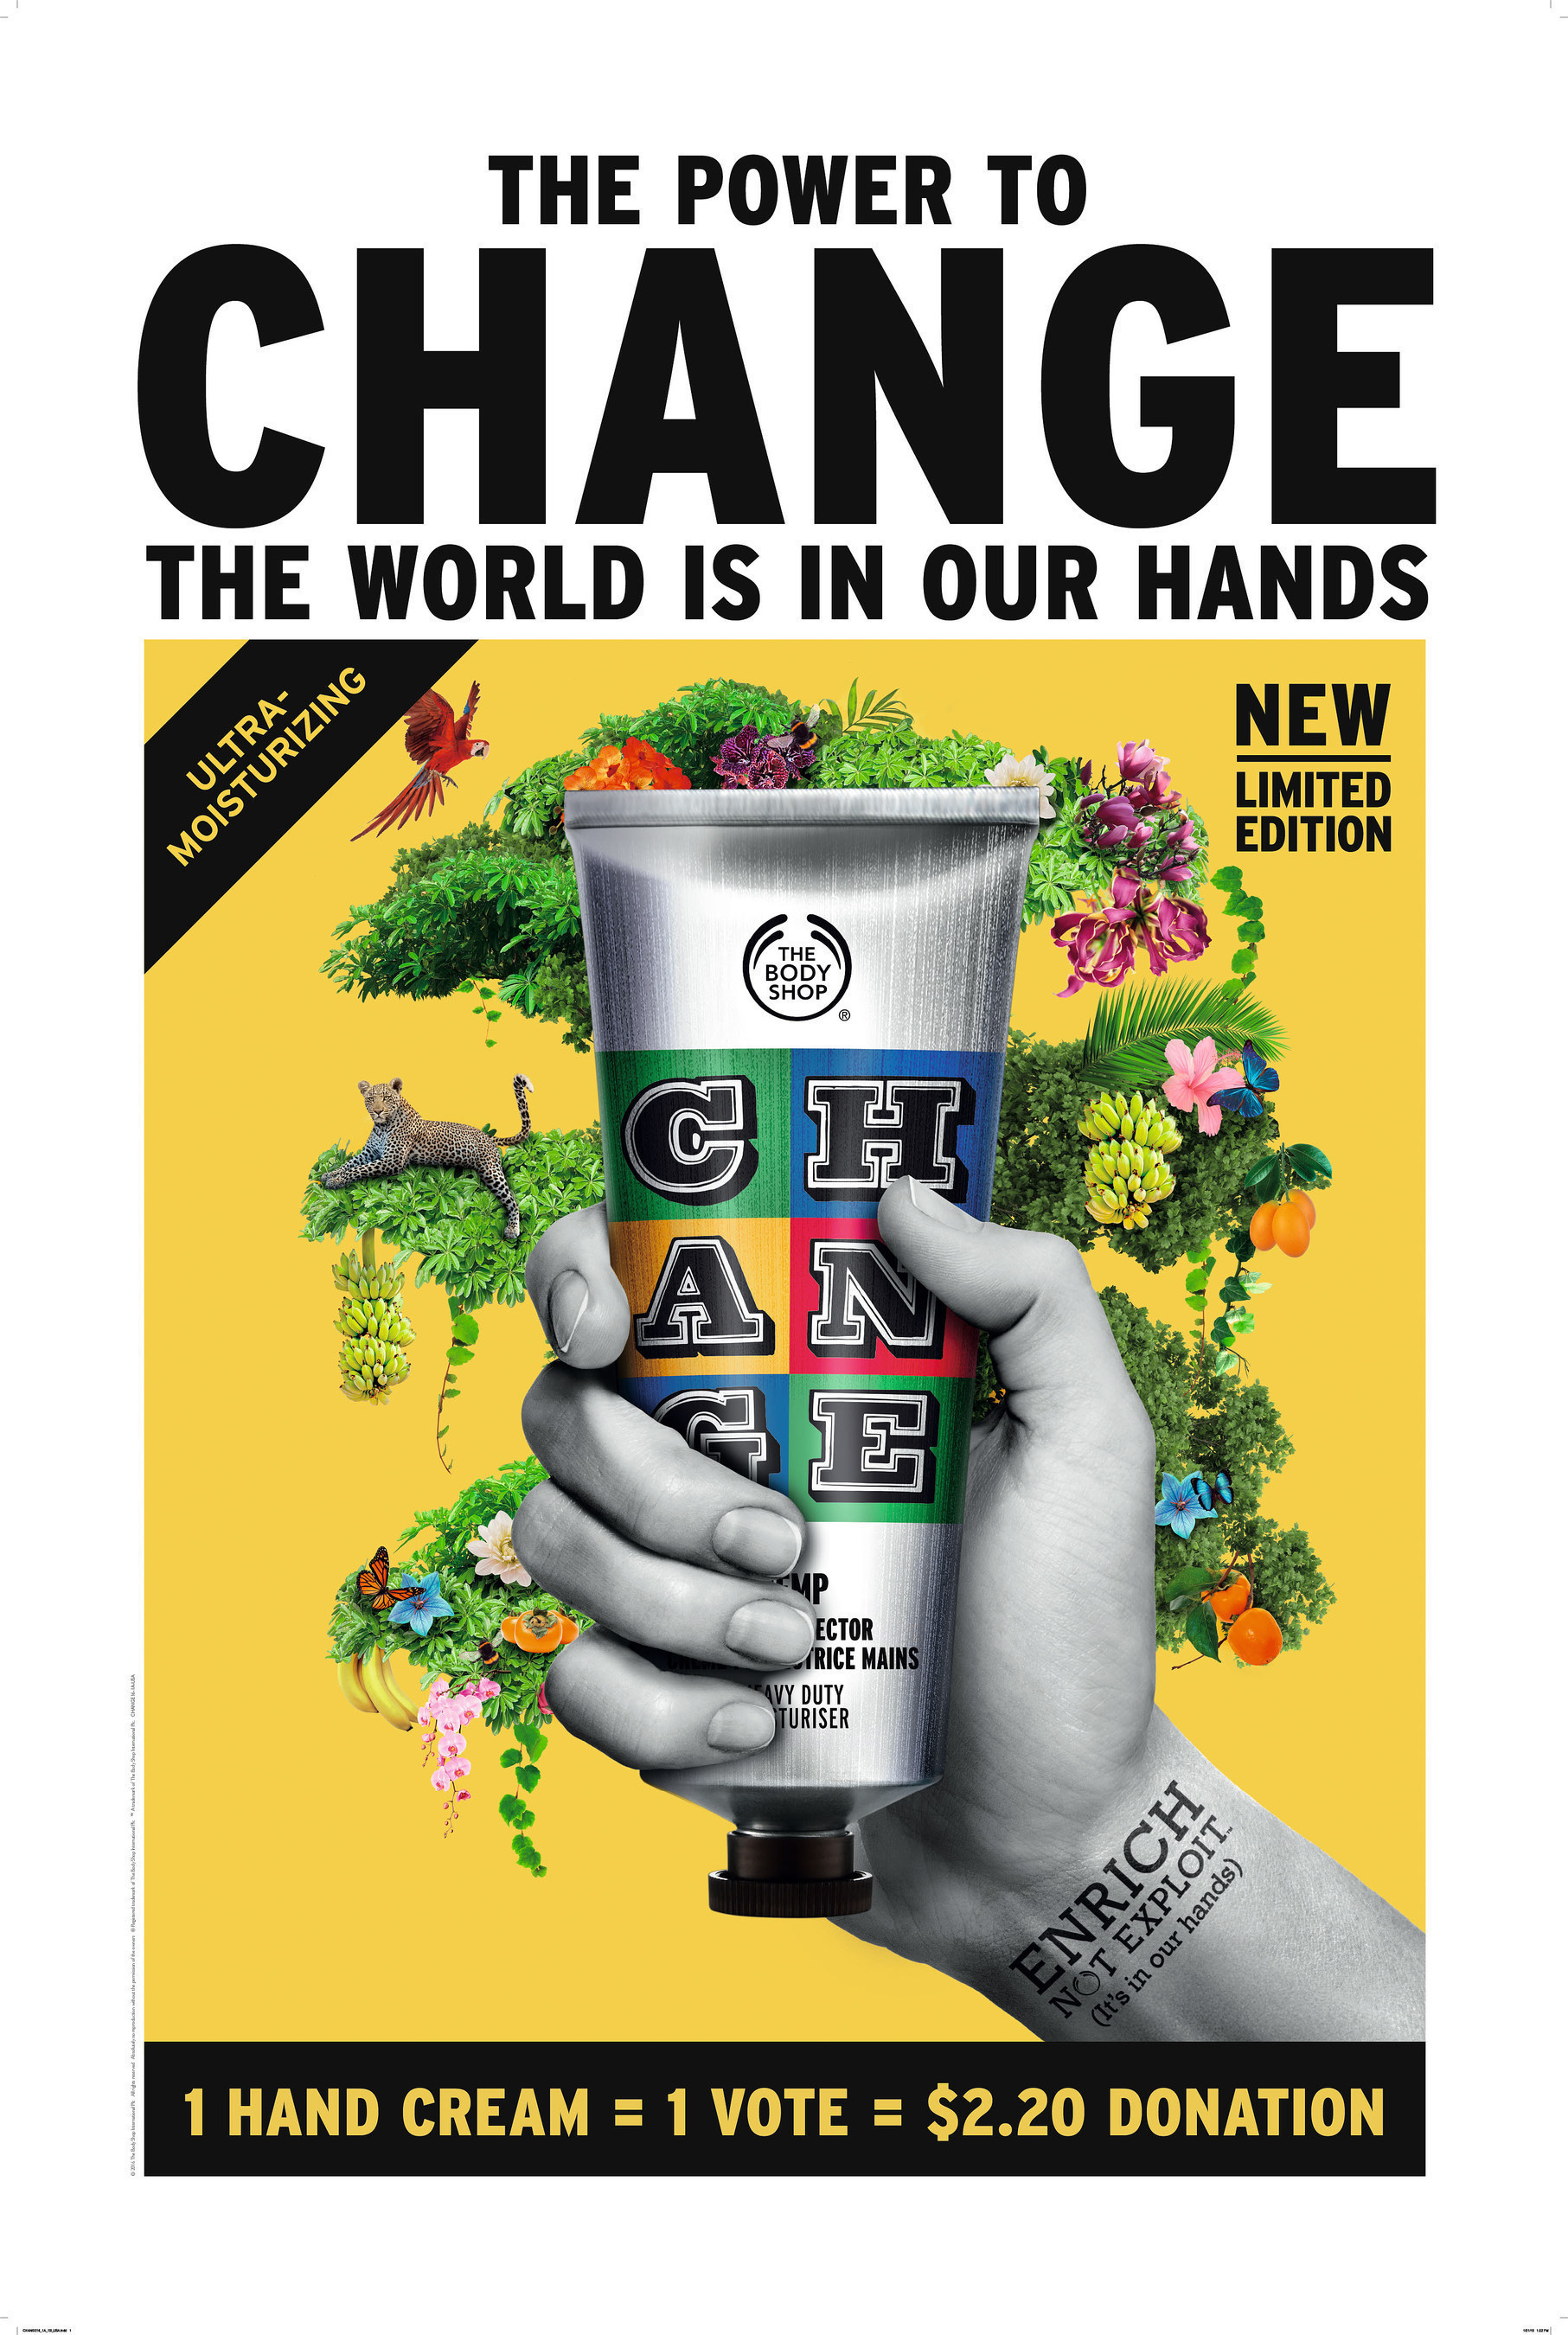 The Body Shop Celebrates New Enrichnotexploit Commitment With Limited Edition Hemp Hand Protector By Street Artist Ben Eine